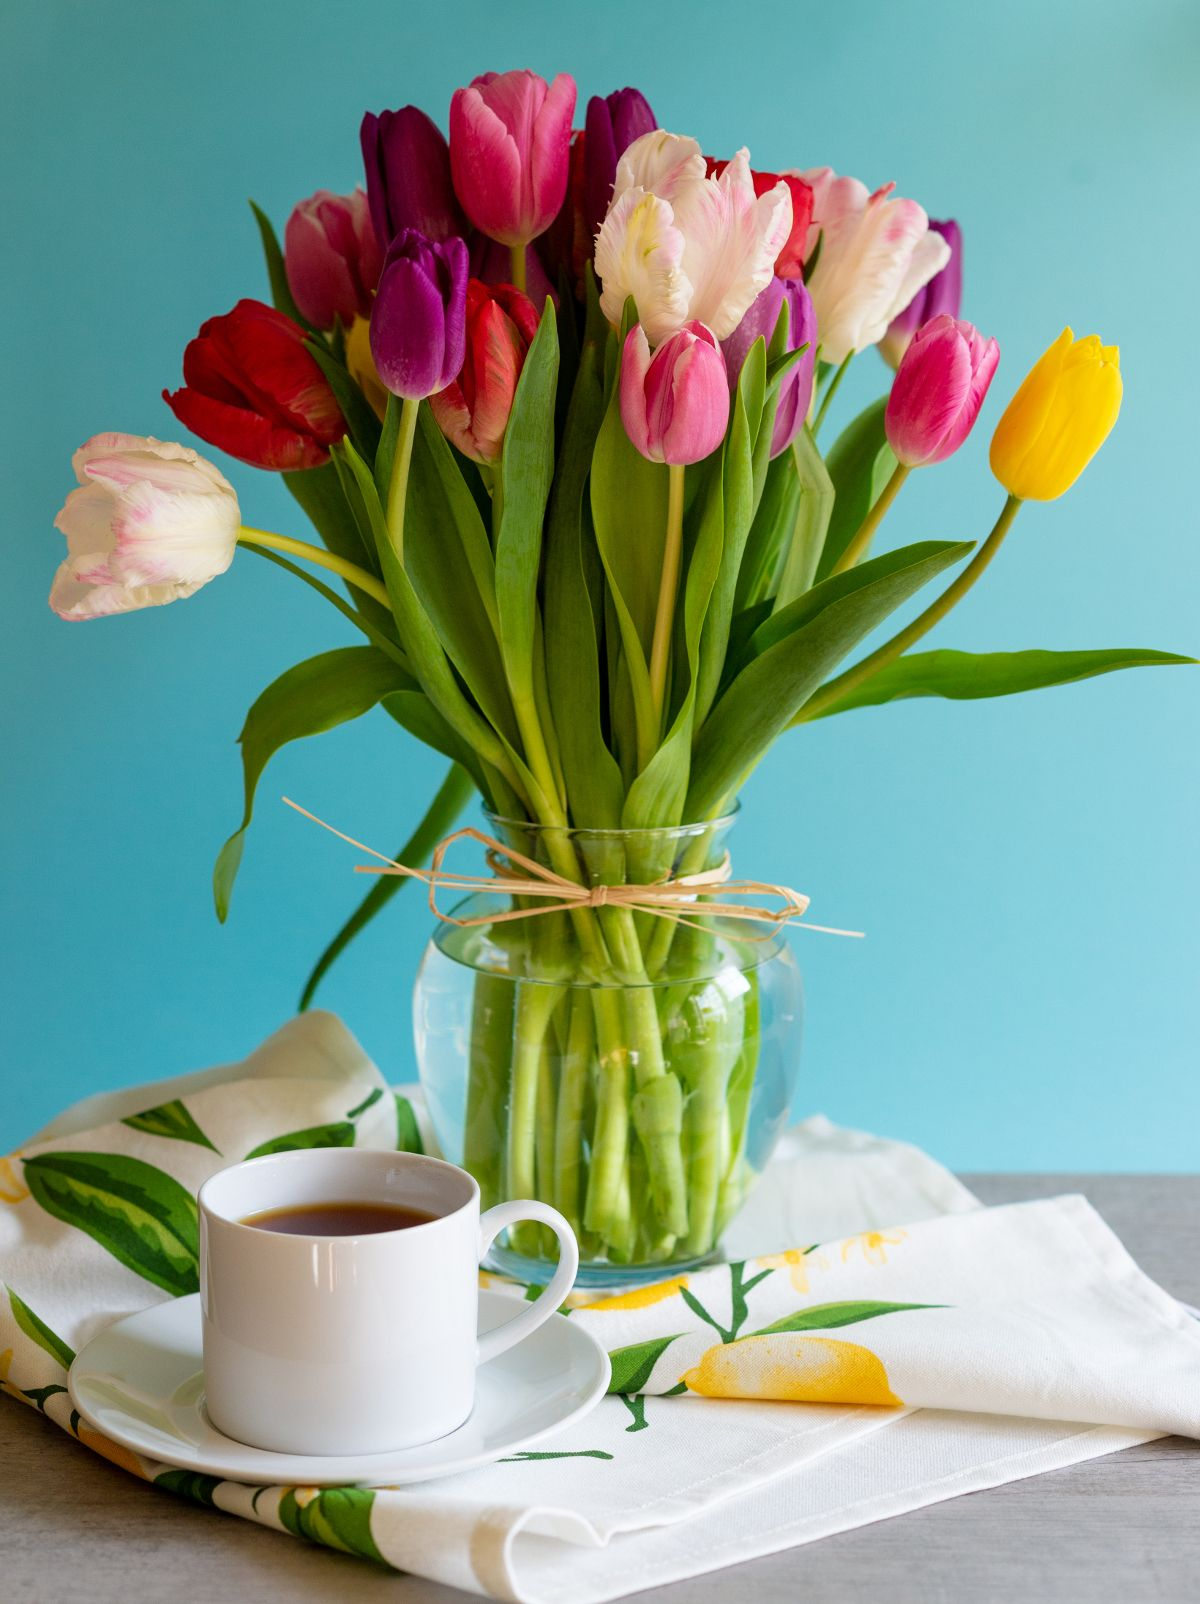 Make Mother's Day cheerful with a tulip bouquet! Our